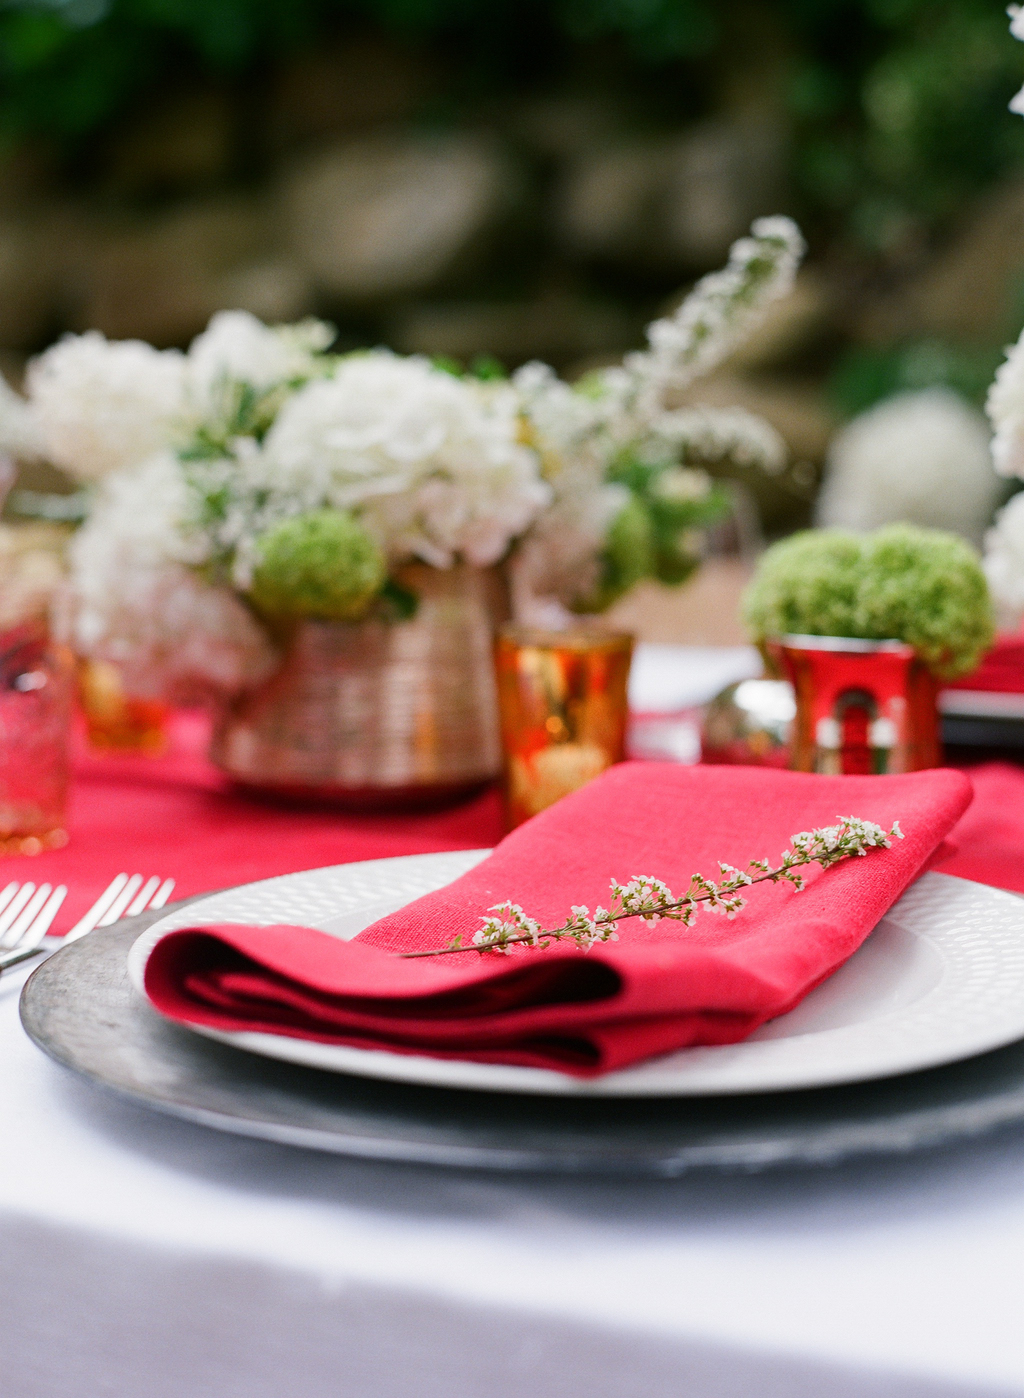 Styled-wedding-santa-barbara-chic-beaux-arts-photographie-italian-bohemian-wedding-venue-table-setting-red-white-flowers-antique-glass-013.full